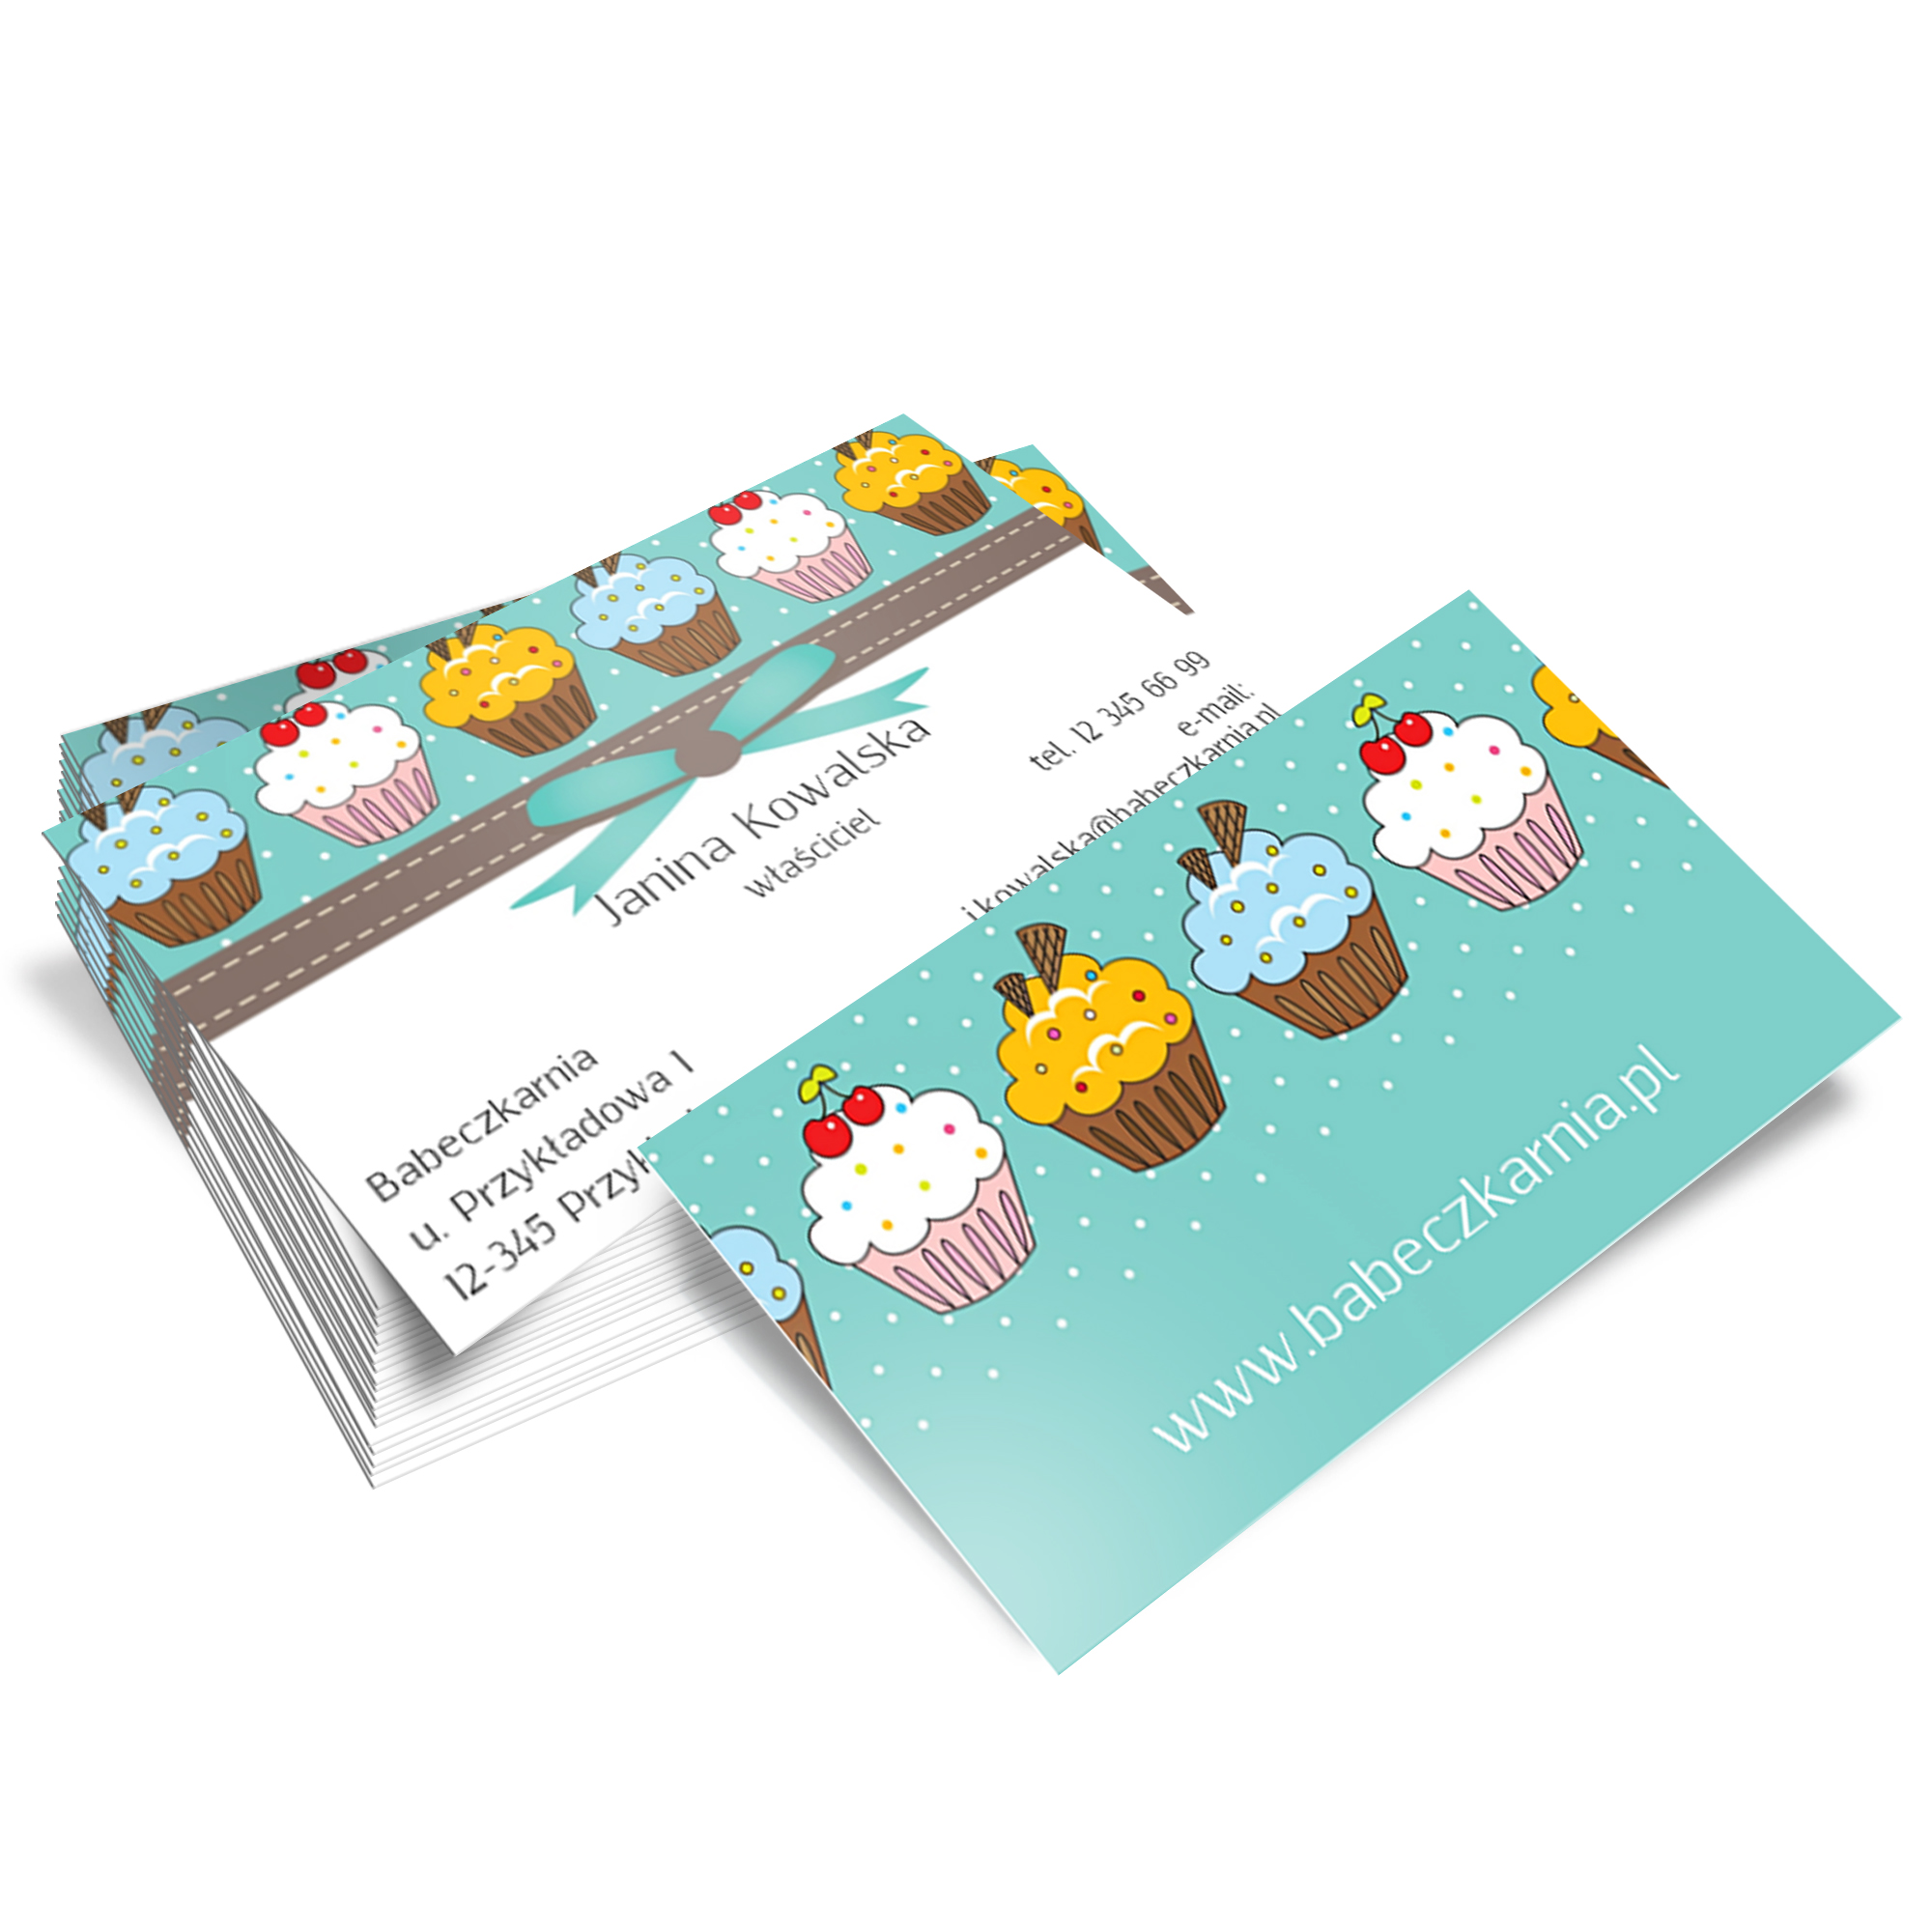 Item Business cards 1000 pieces MASTER ON-LINE